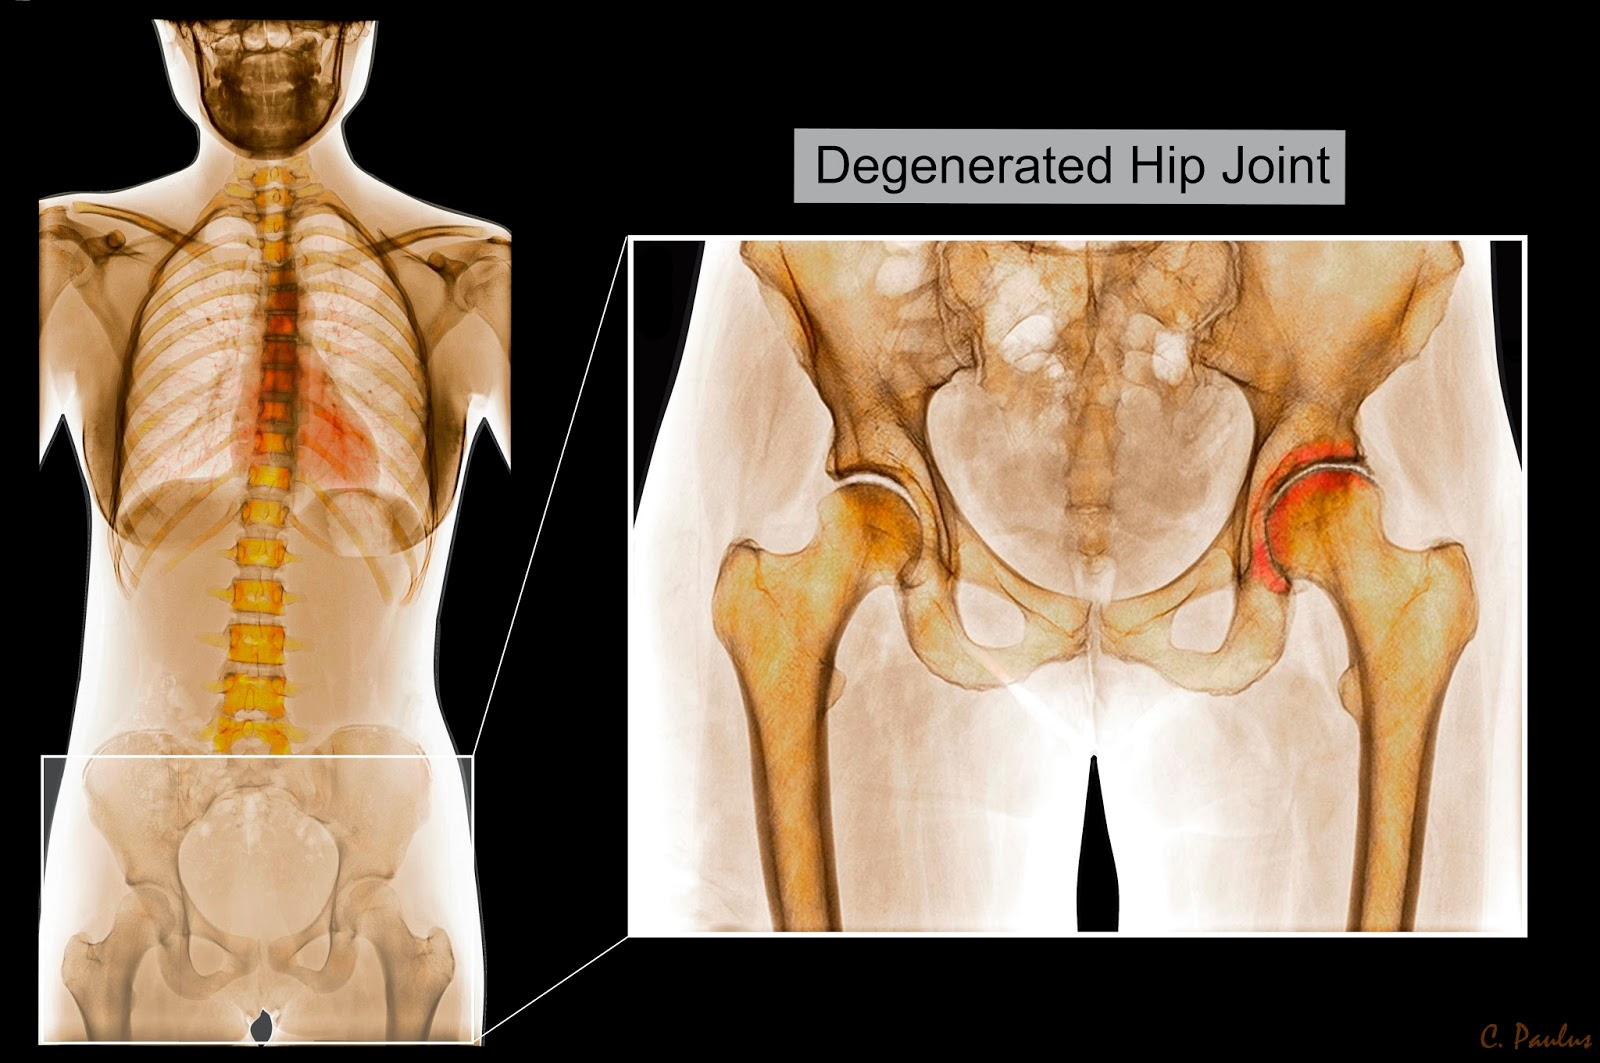 Color X-Ray of the Pelvis showing Hip Joint Arthritis